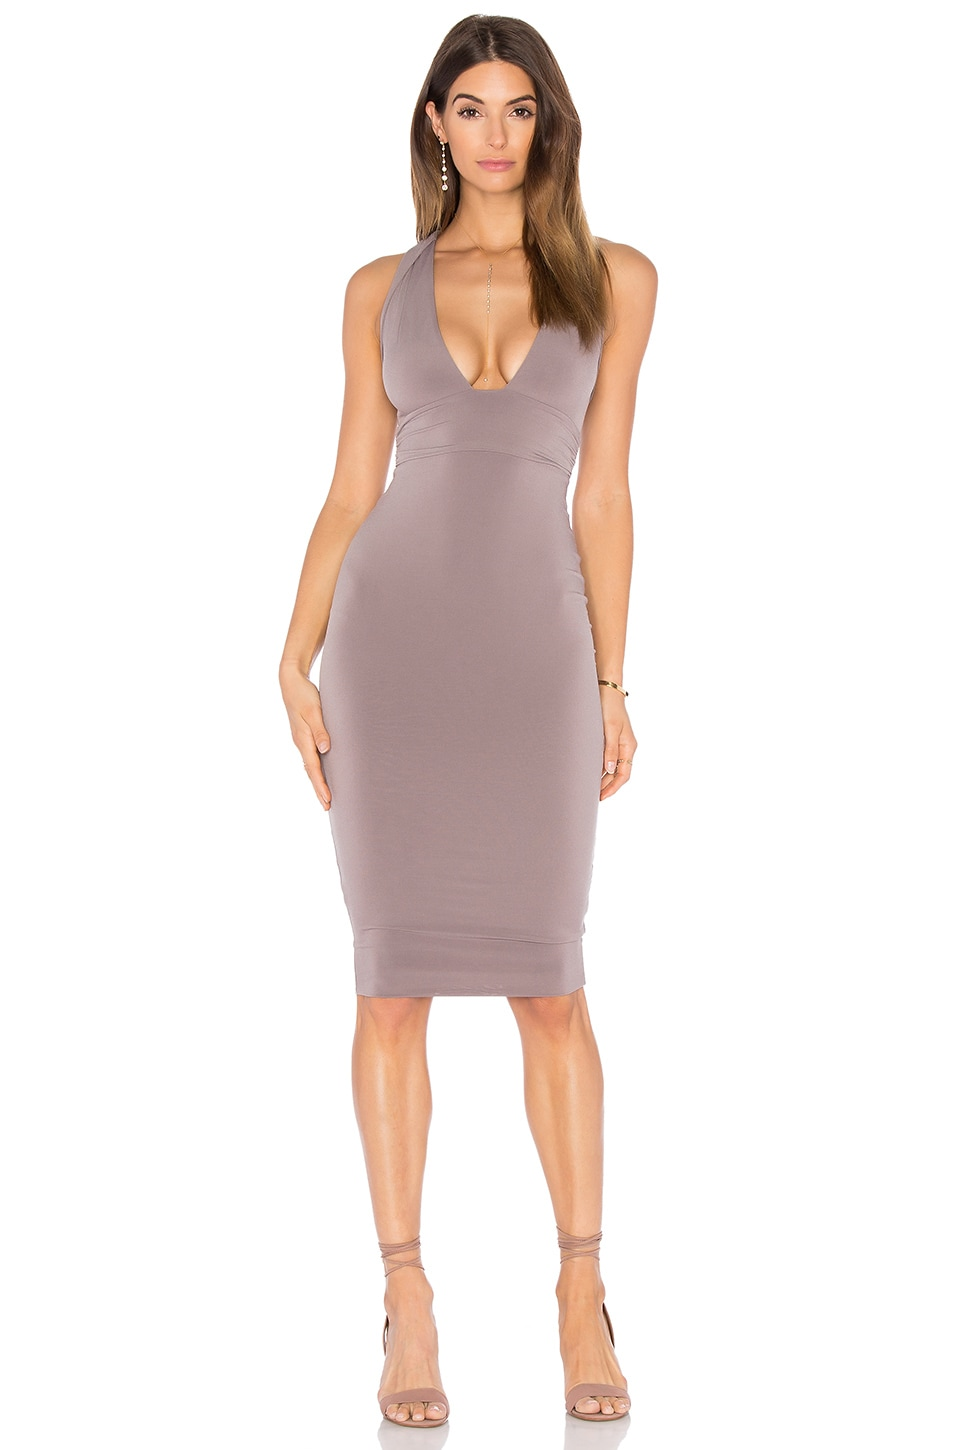 Nookie Cherish Midi Dress in Mocha